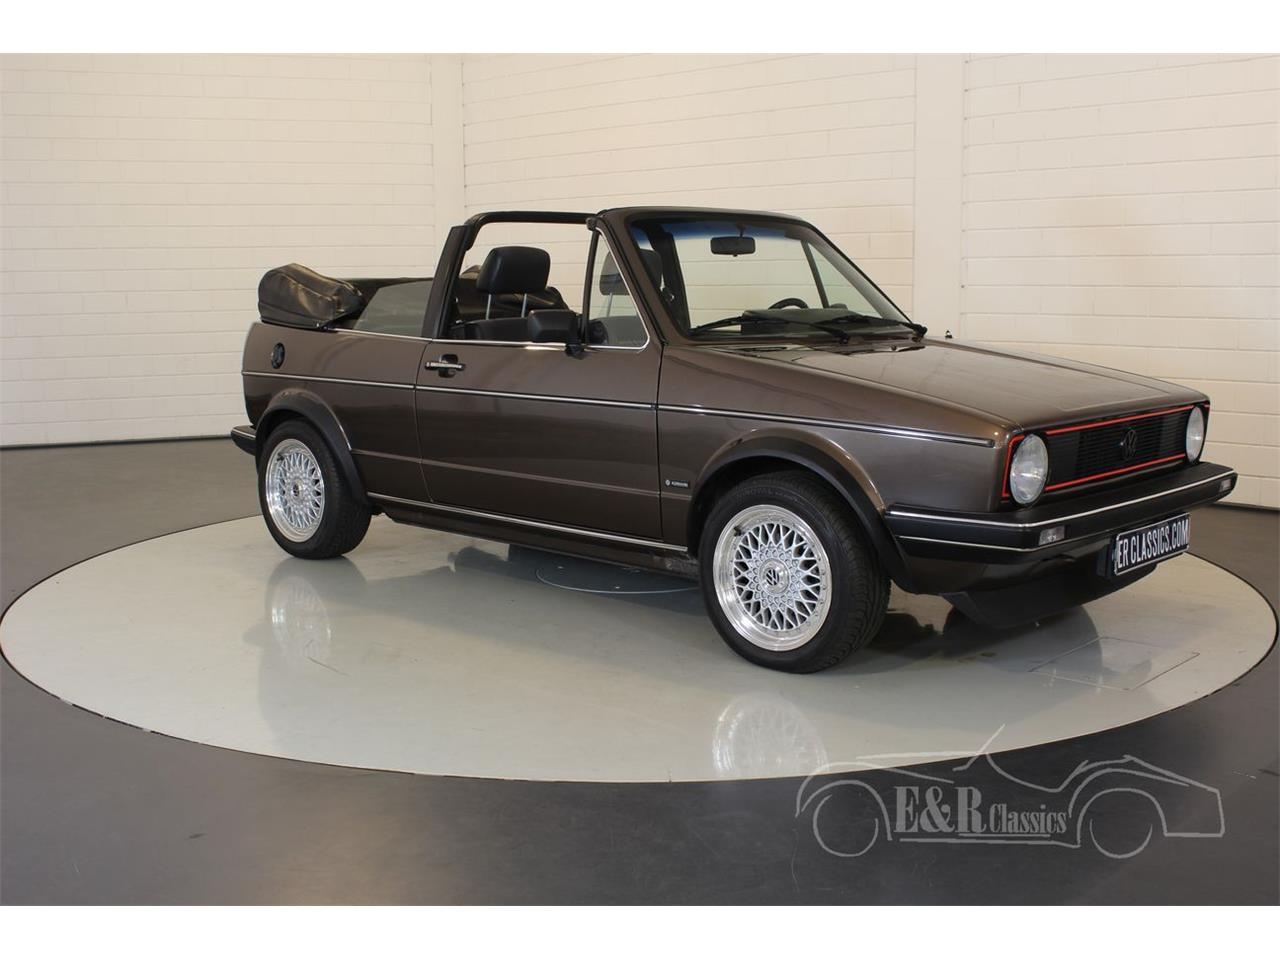 Large Picture of '84 Golf located in - Keine Angabe - - $19,100.00 Offered by E & R Classics - PH4B